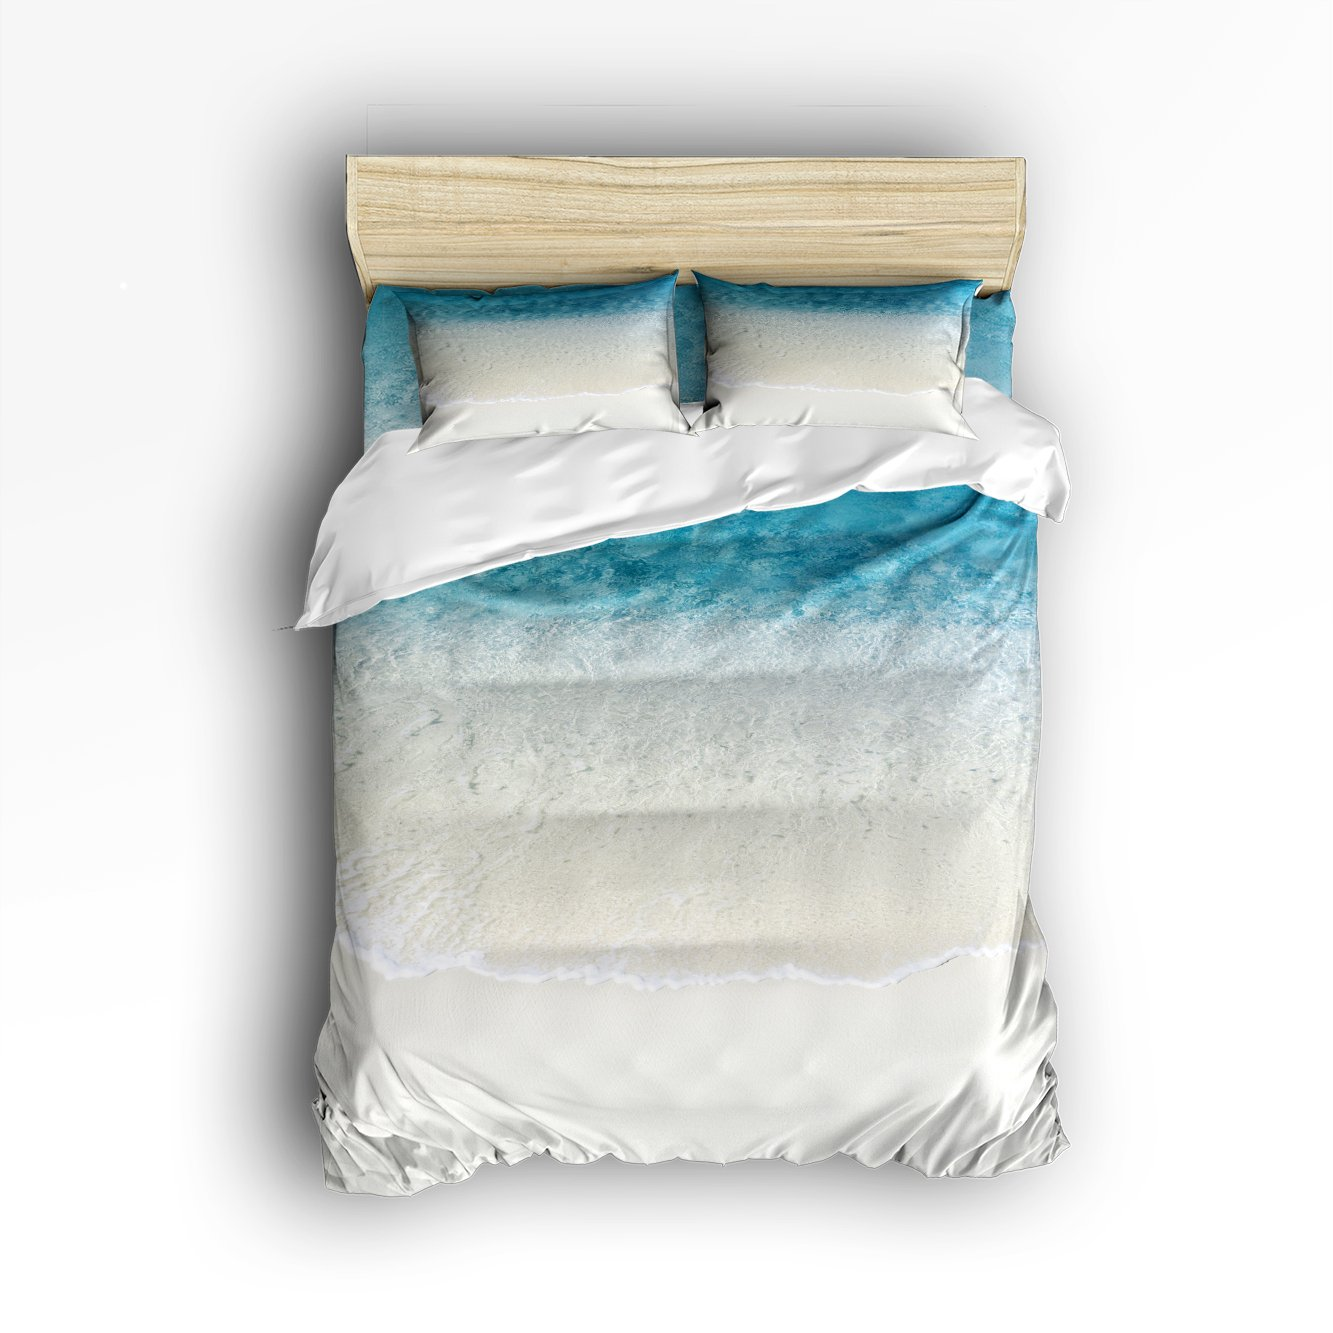 Libaoge 4 Piece Bed Sheets Set, Sandy Beach Blue Ocean Waves, 1 Flat Sheet 1 Duvet Cover and 2 Pillow Cases by Libaoge